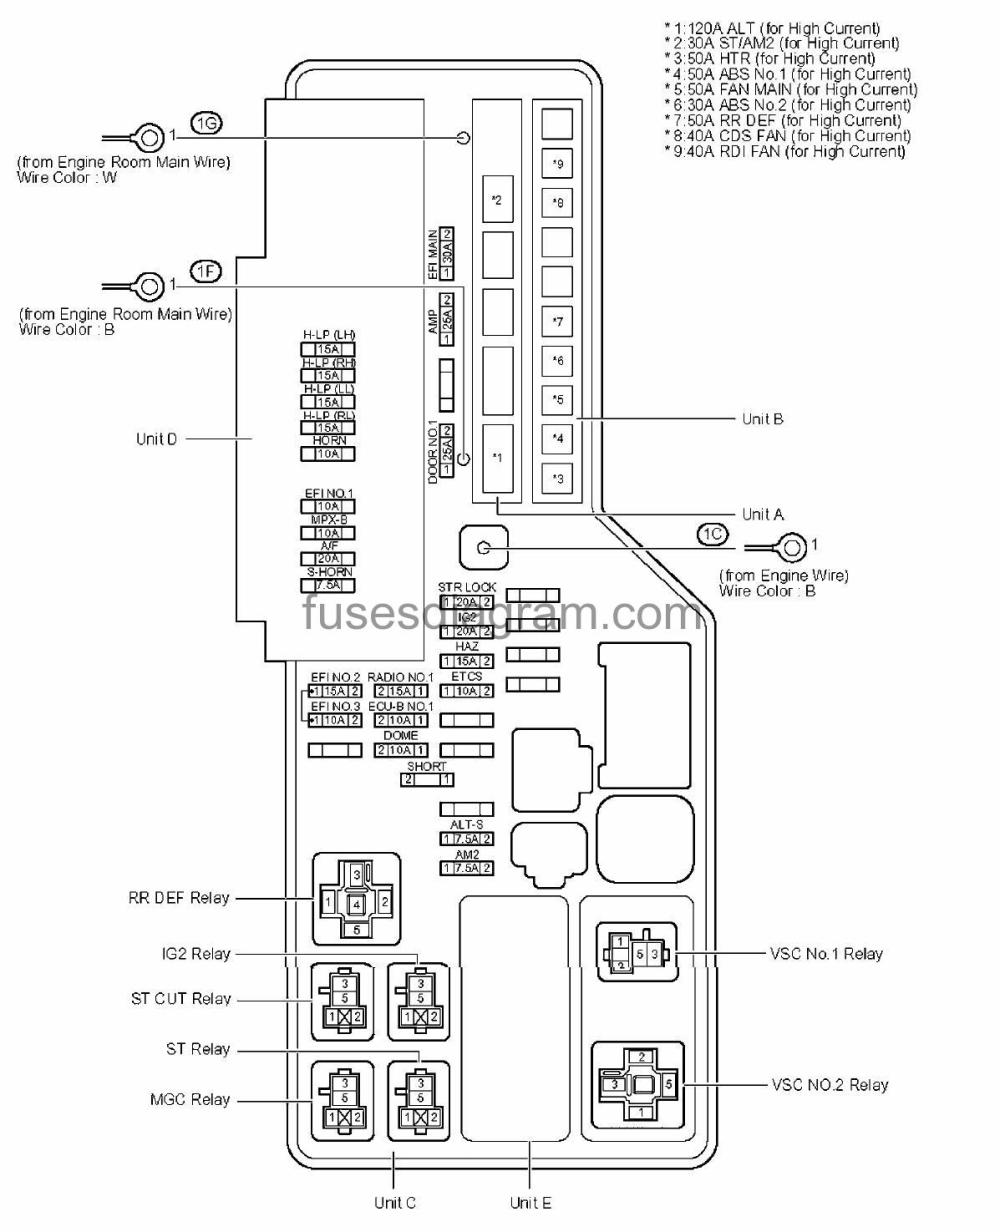 medium resolution of 2002 toyota camry fuse box guide wiring diagram toolbox 2003 camry fuse box diagram under dash